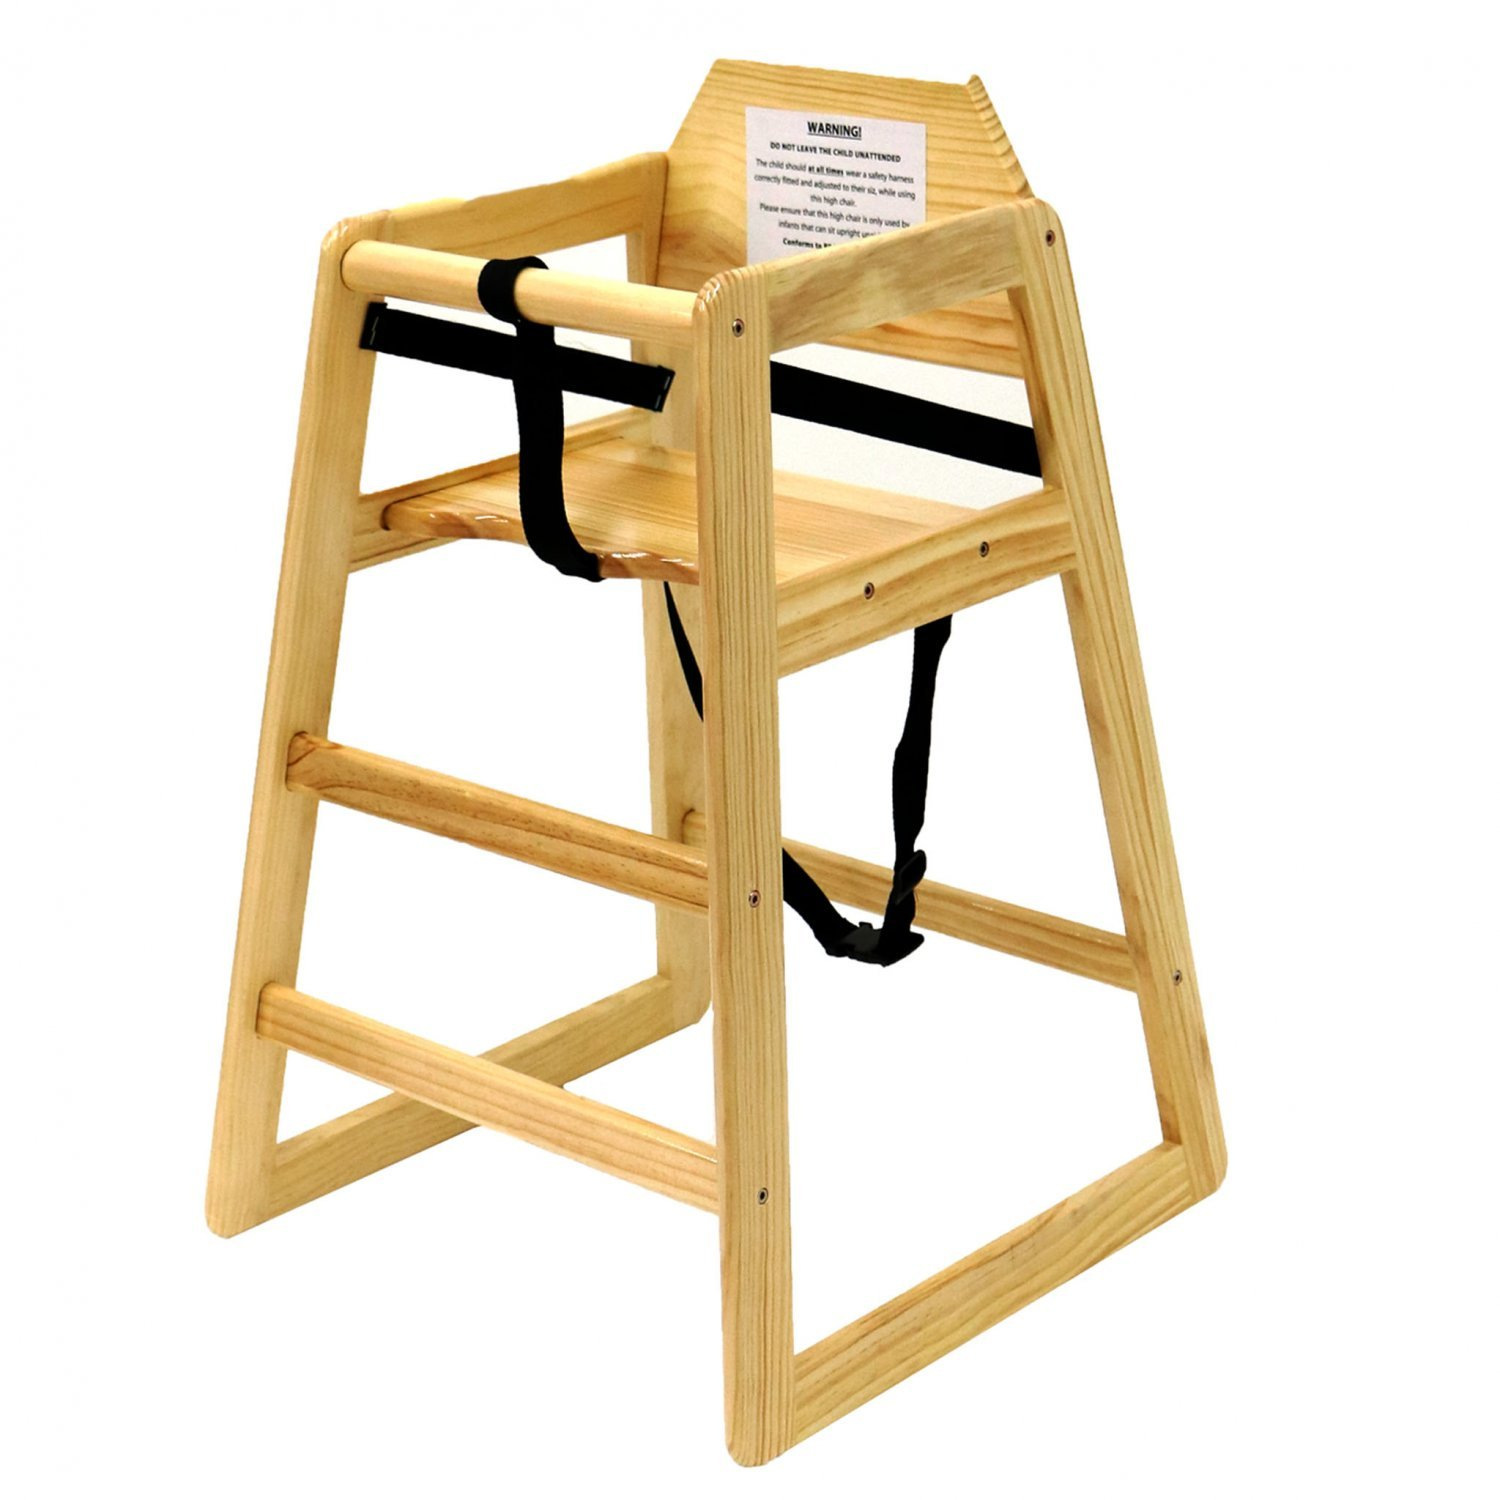 Kids Wooden High Chair - Natural - £26.99 : Oypla ...